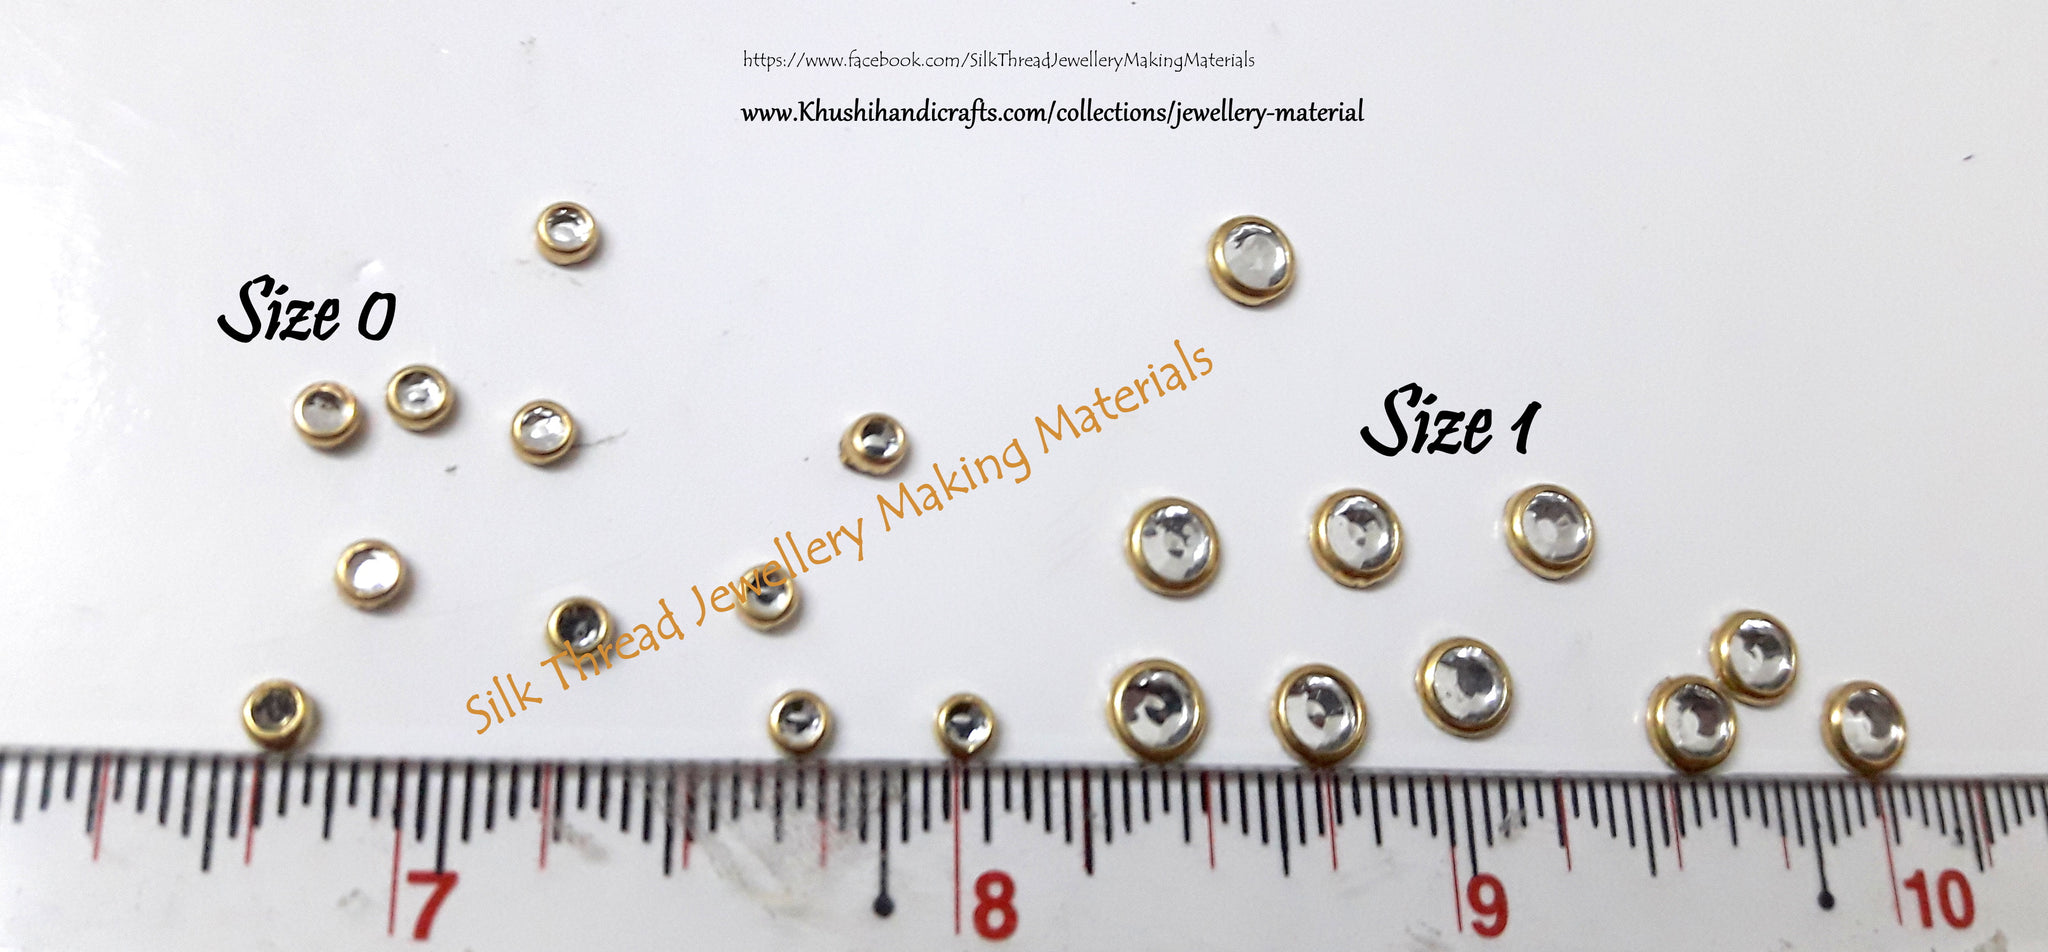 Kundan stones - Round. Pack of 10 grams!